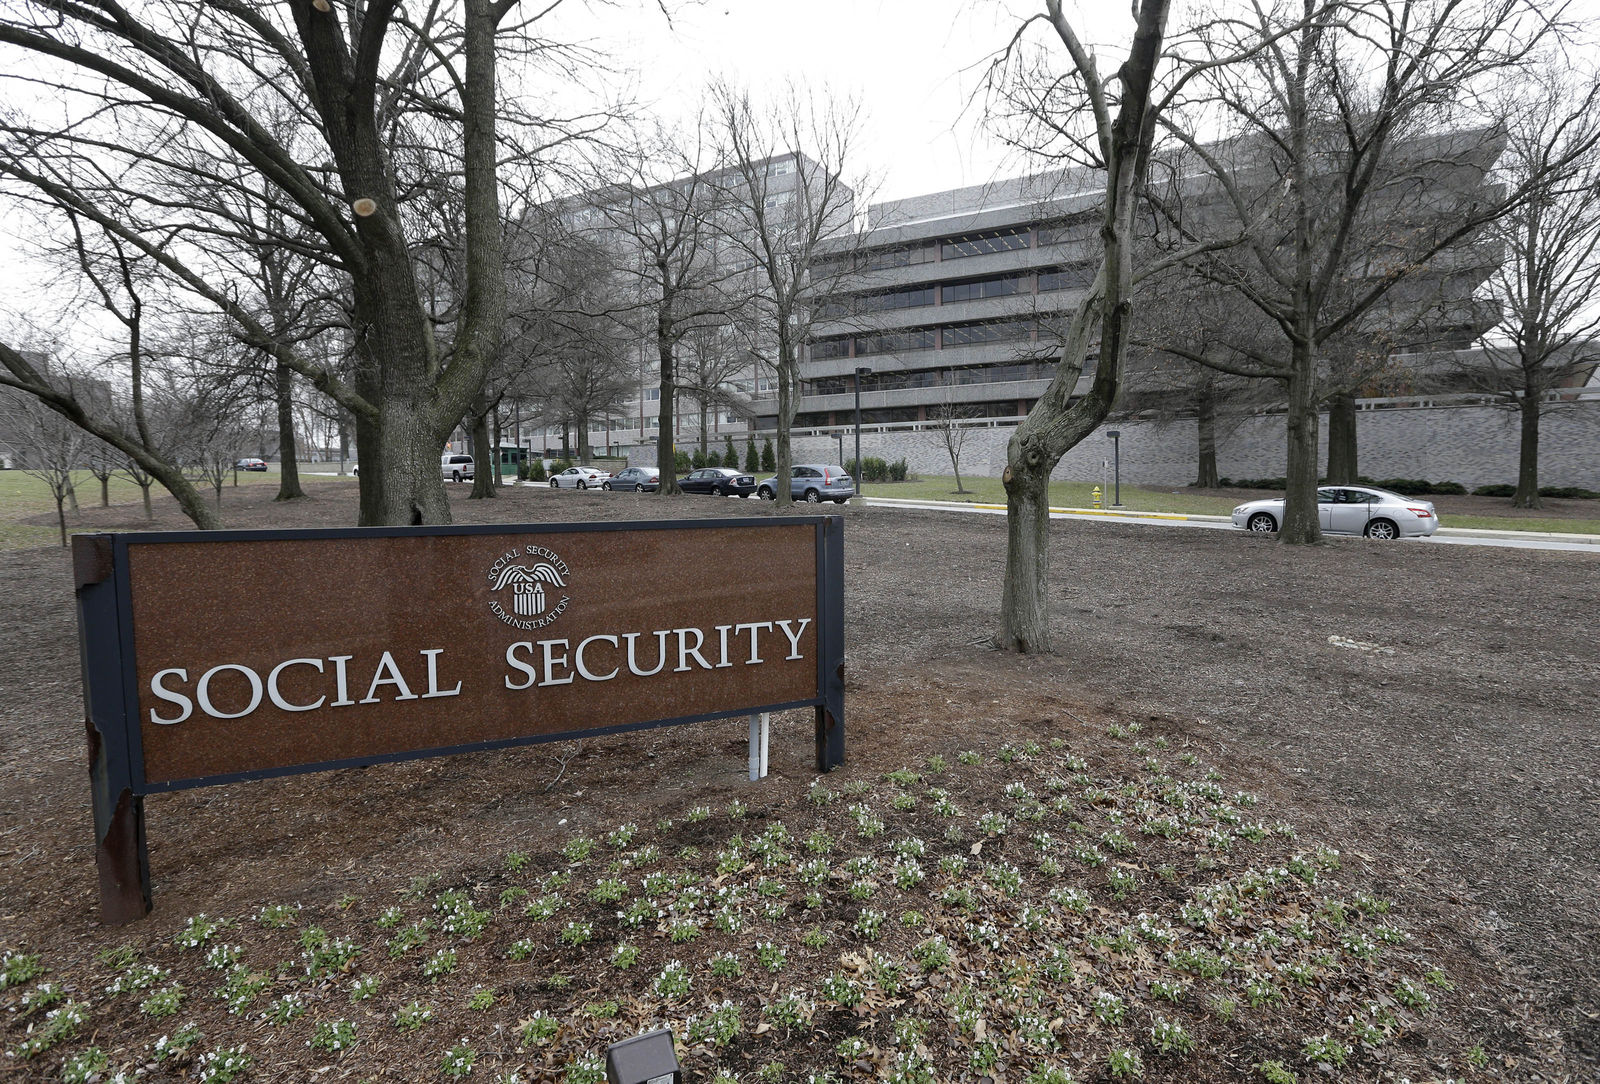 FILE - In this file photo, the Social Security Administration's main campus is seen in Woodlawn, Md. (AP Photo/Patrick Semansky, File)